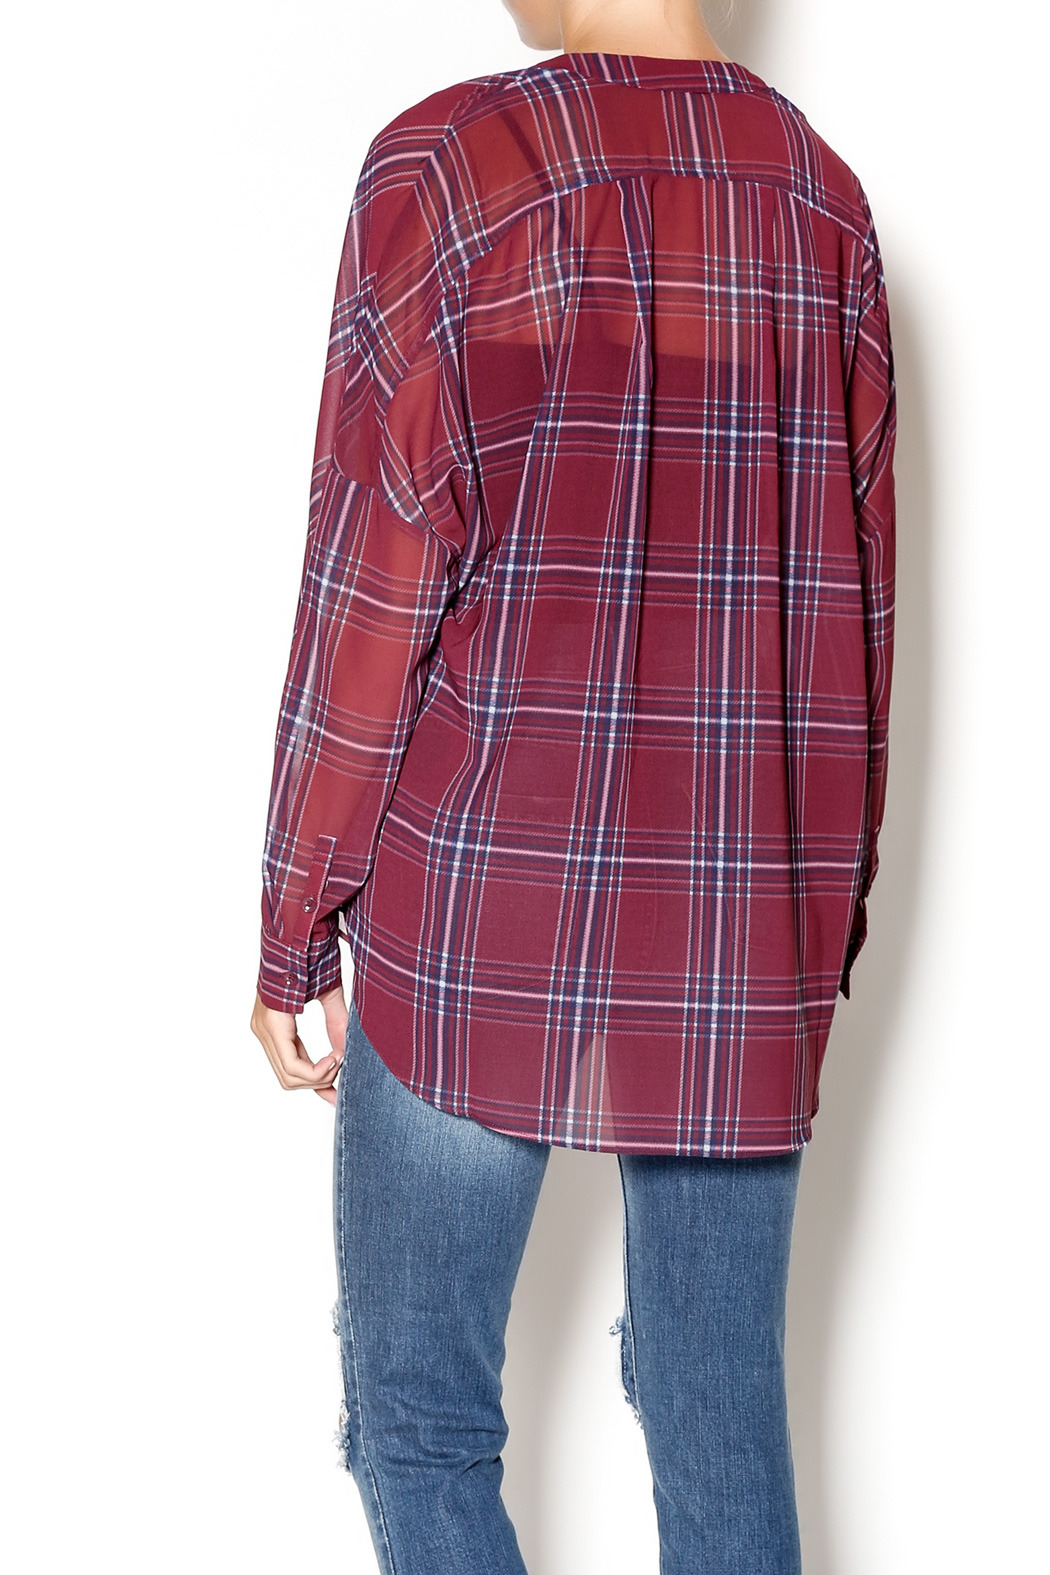 Gentle Fawn West Plaid Blouse - Back Cropped Image